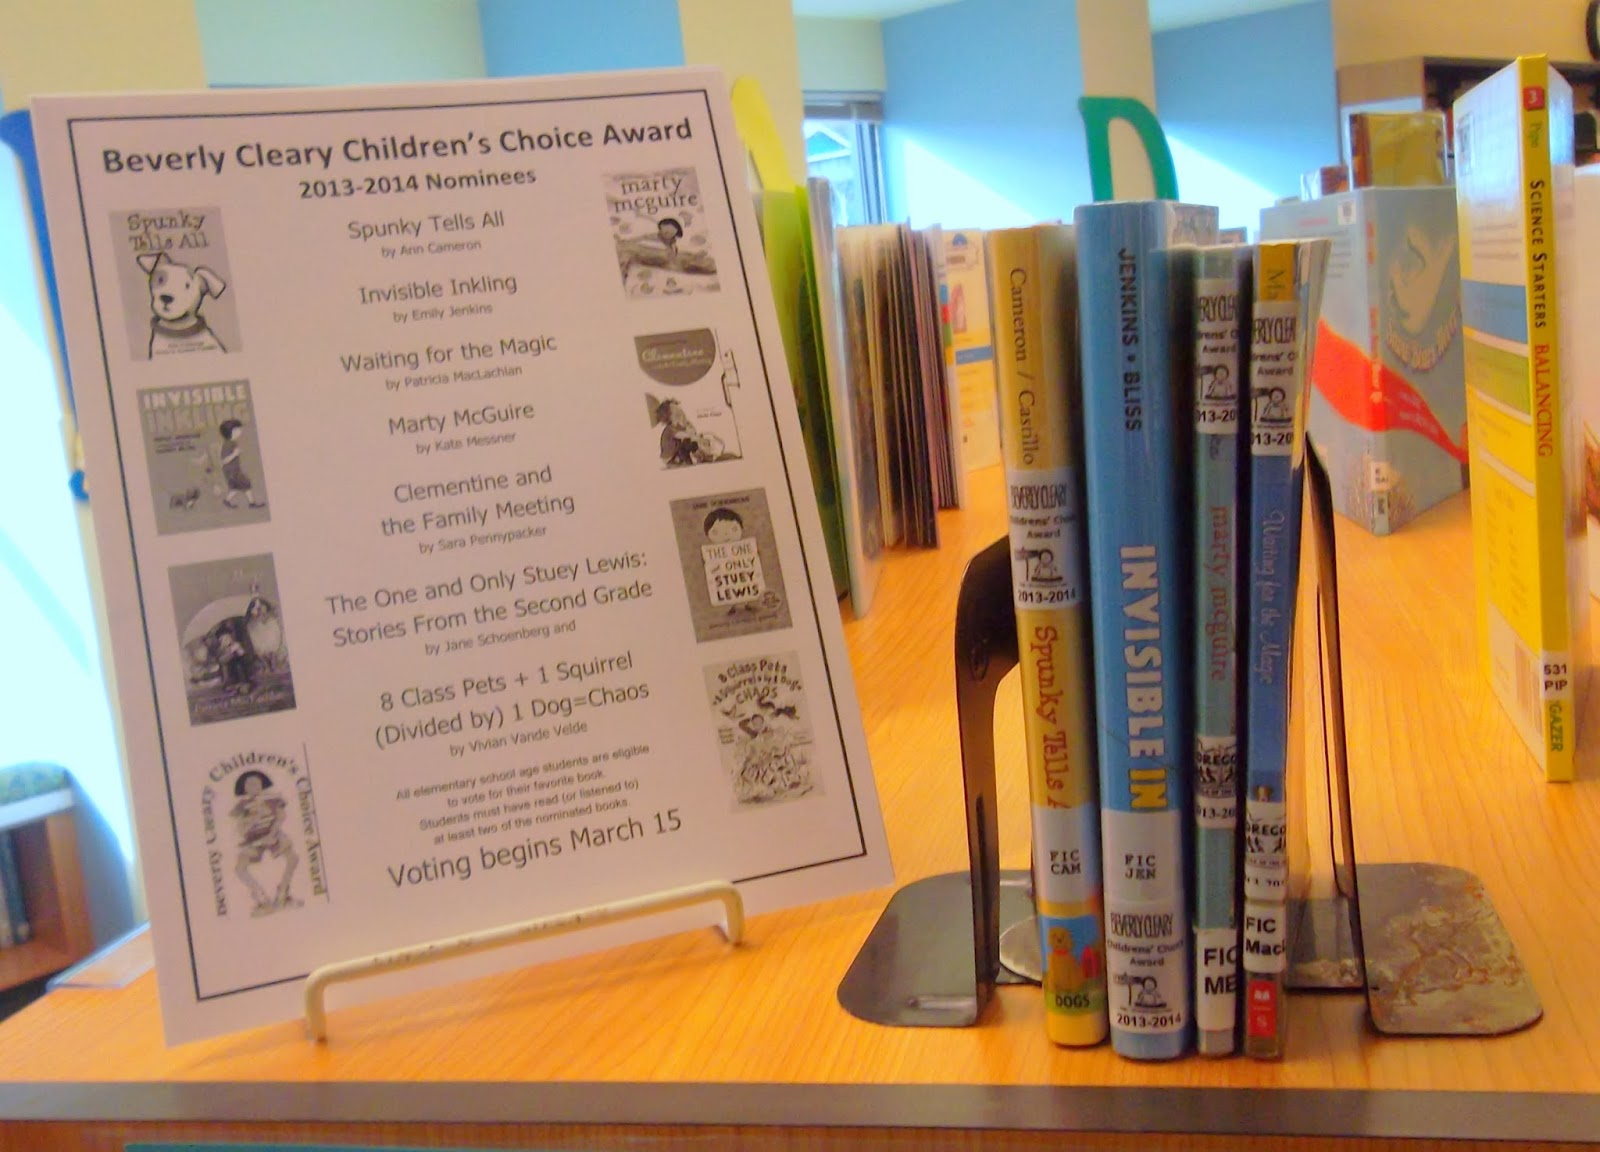 A poster held up by a wire stand displays cover art and lists titles and authors for Beverly Cleary Children's Choice nominees: Spunky Tells All by Ann Cameron, Invisible Inkling by Emily Jenkins, Waiting for the Magic by Patricia MacLachlan, Marty McGuire by Kate Messner, Clementine and the Family Meeting by Sara Pennypacker, The One and Only Stuey Lewis: Stories From the Second Grade by Jane Schoenberg and 8 Class Pets + 1 Squirrel (Divided by) 1 Dog=Chaos by Vivian Vande Velde . To the poster's right, four books -- Spunky Tells All, Invisible Inkling, Marty McGuire and Waiting for the Magic -- are shelved between bookends. Each book has a Beverly Cleary award label on its spine.